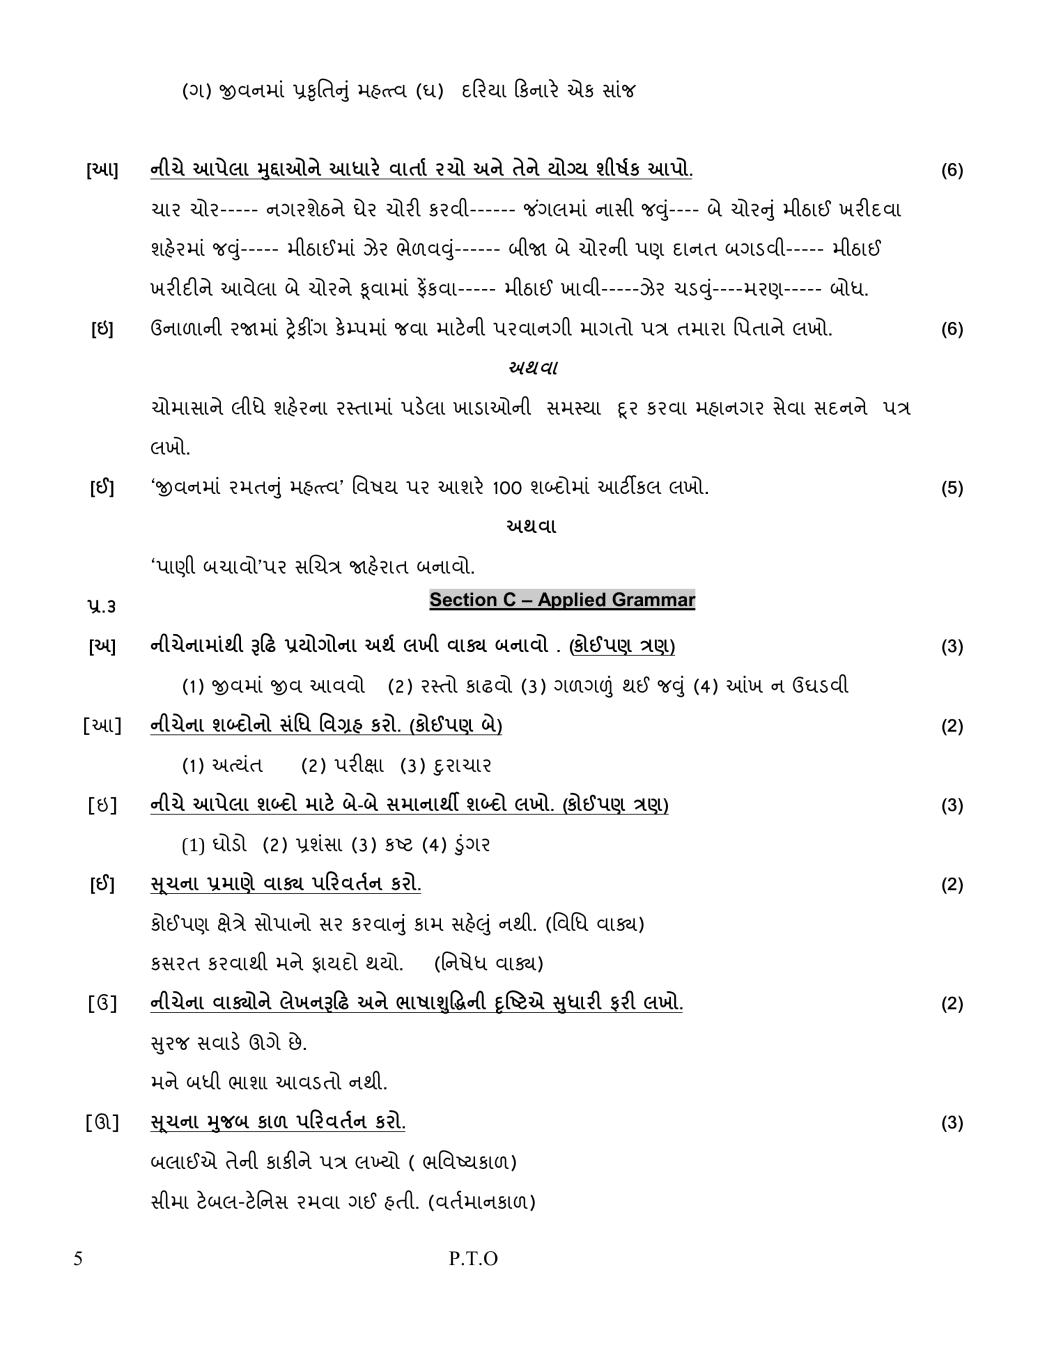 CBSE Sample Papers 2020 for Class 10 – Gujarati